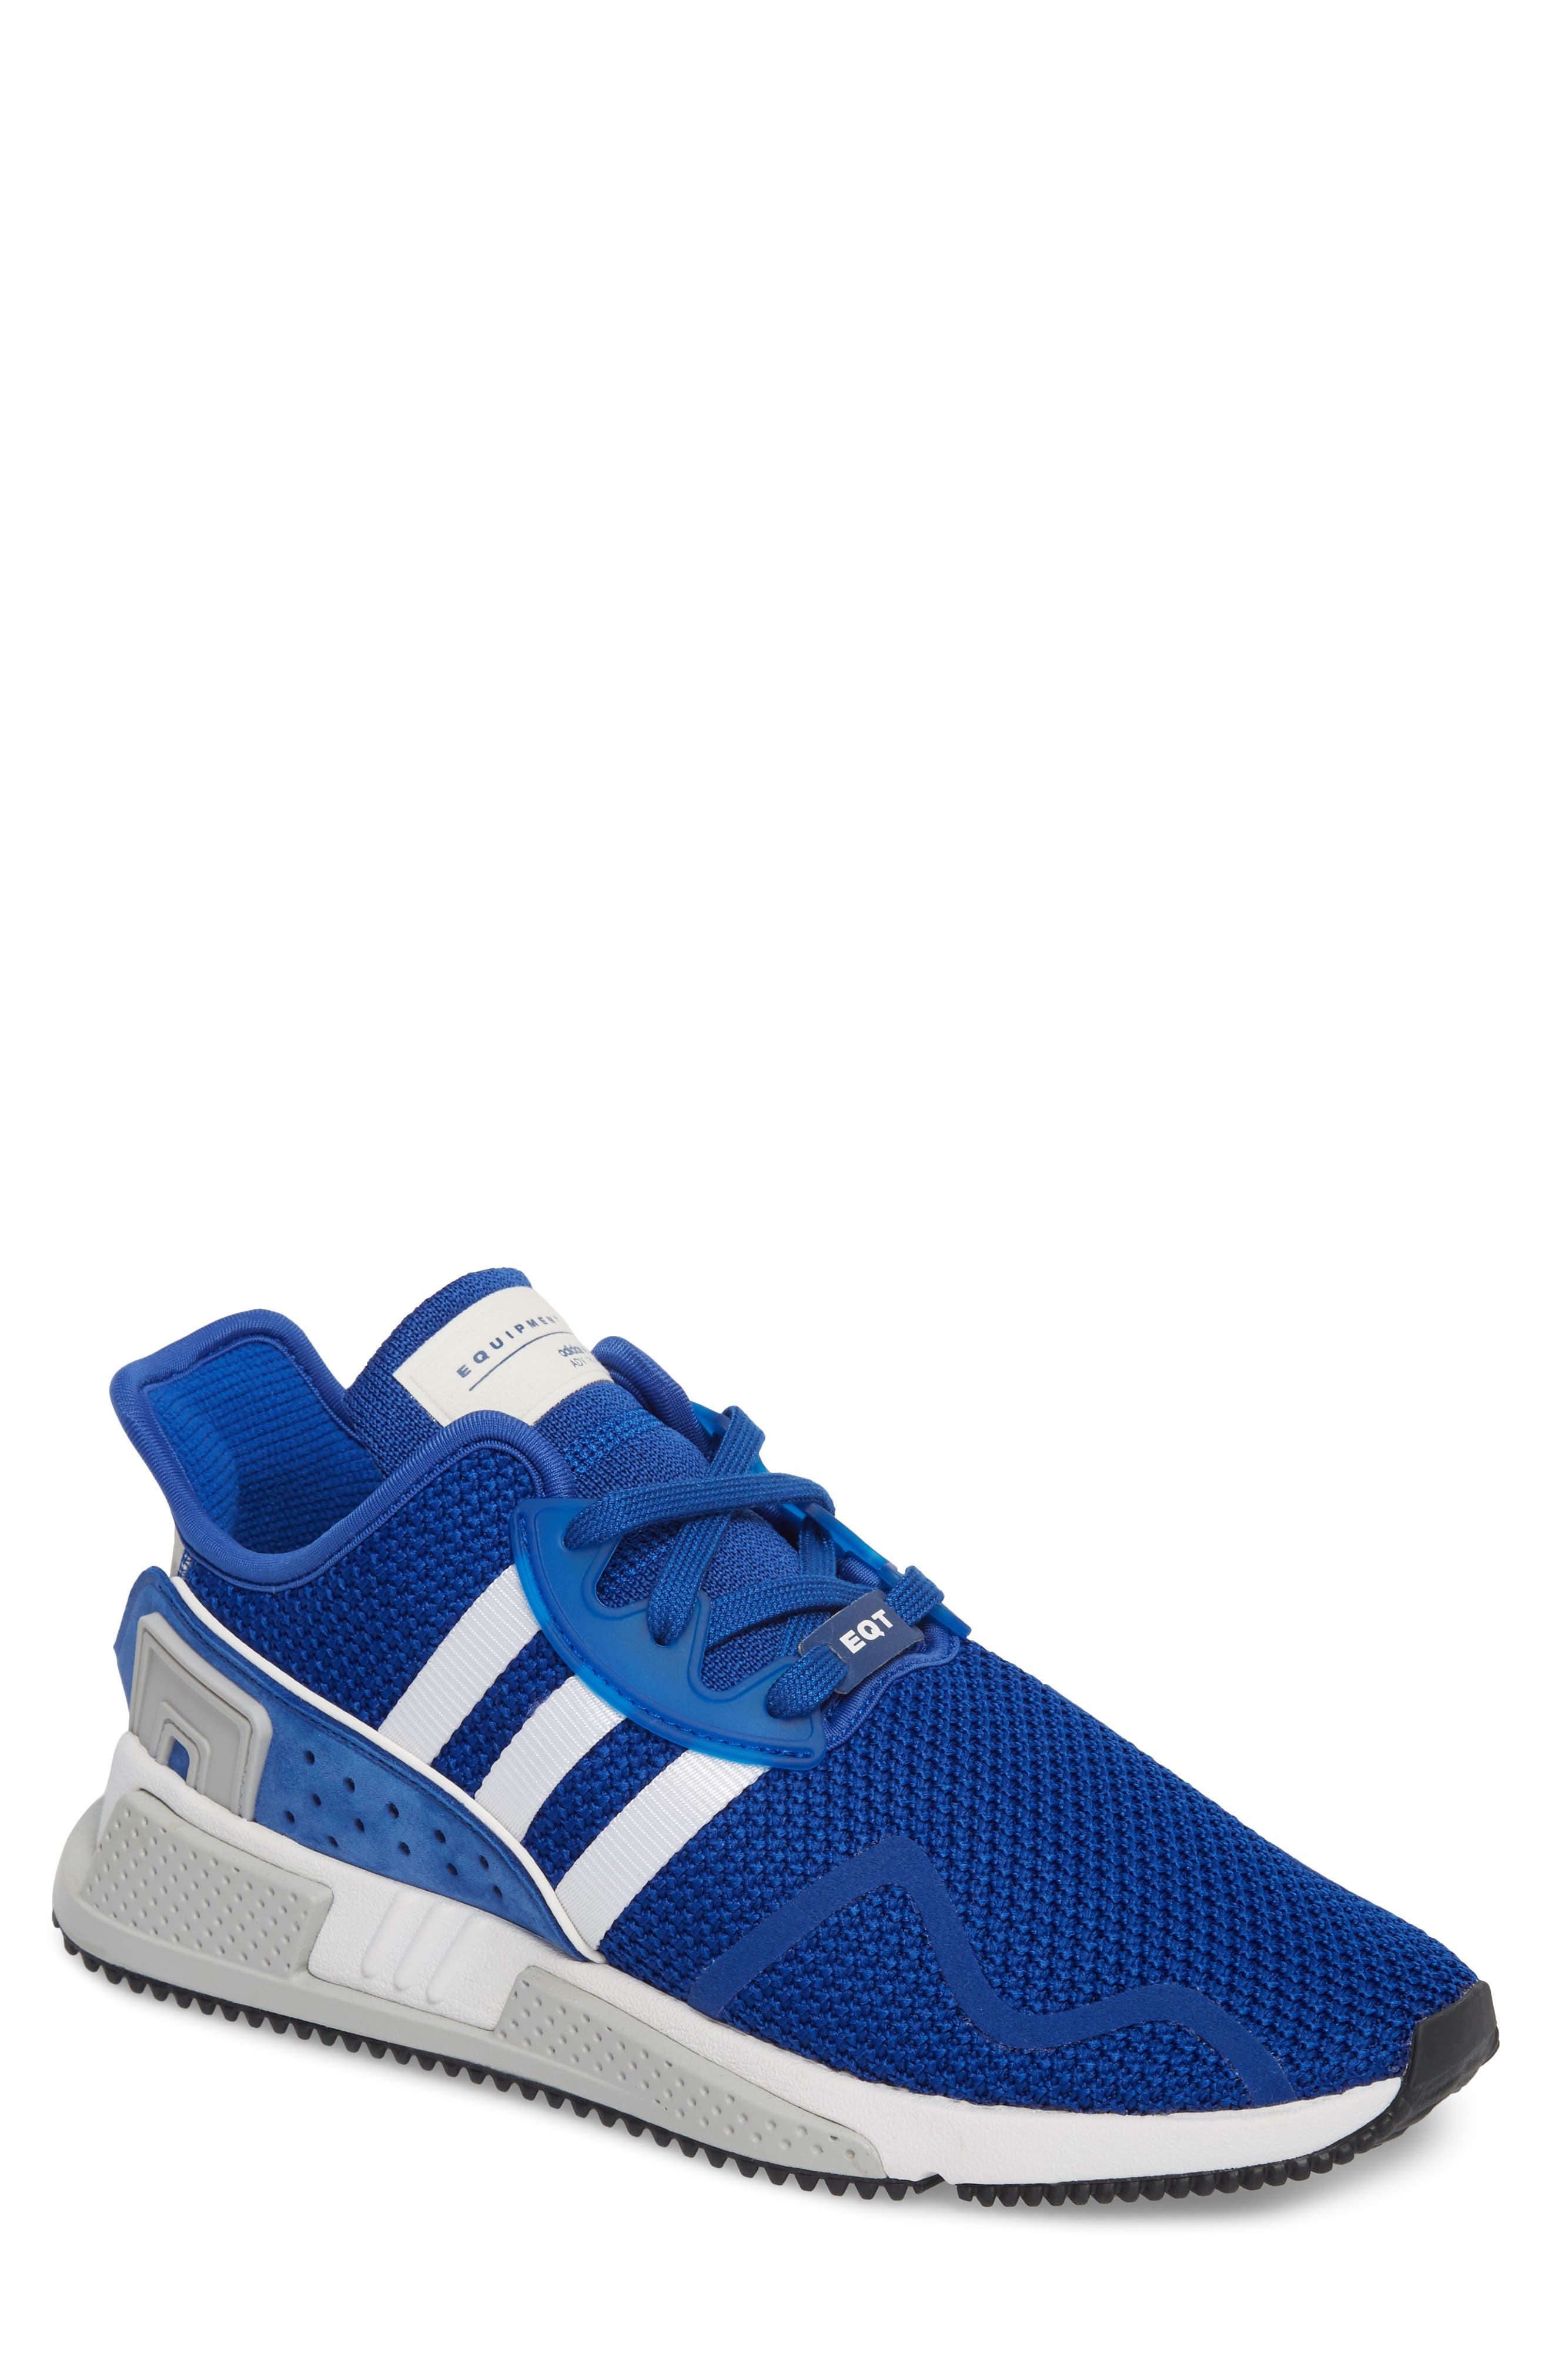 EQT Cushion ADV Sneaker,                         Main,                         color, Royal/ Crystal White